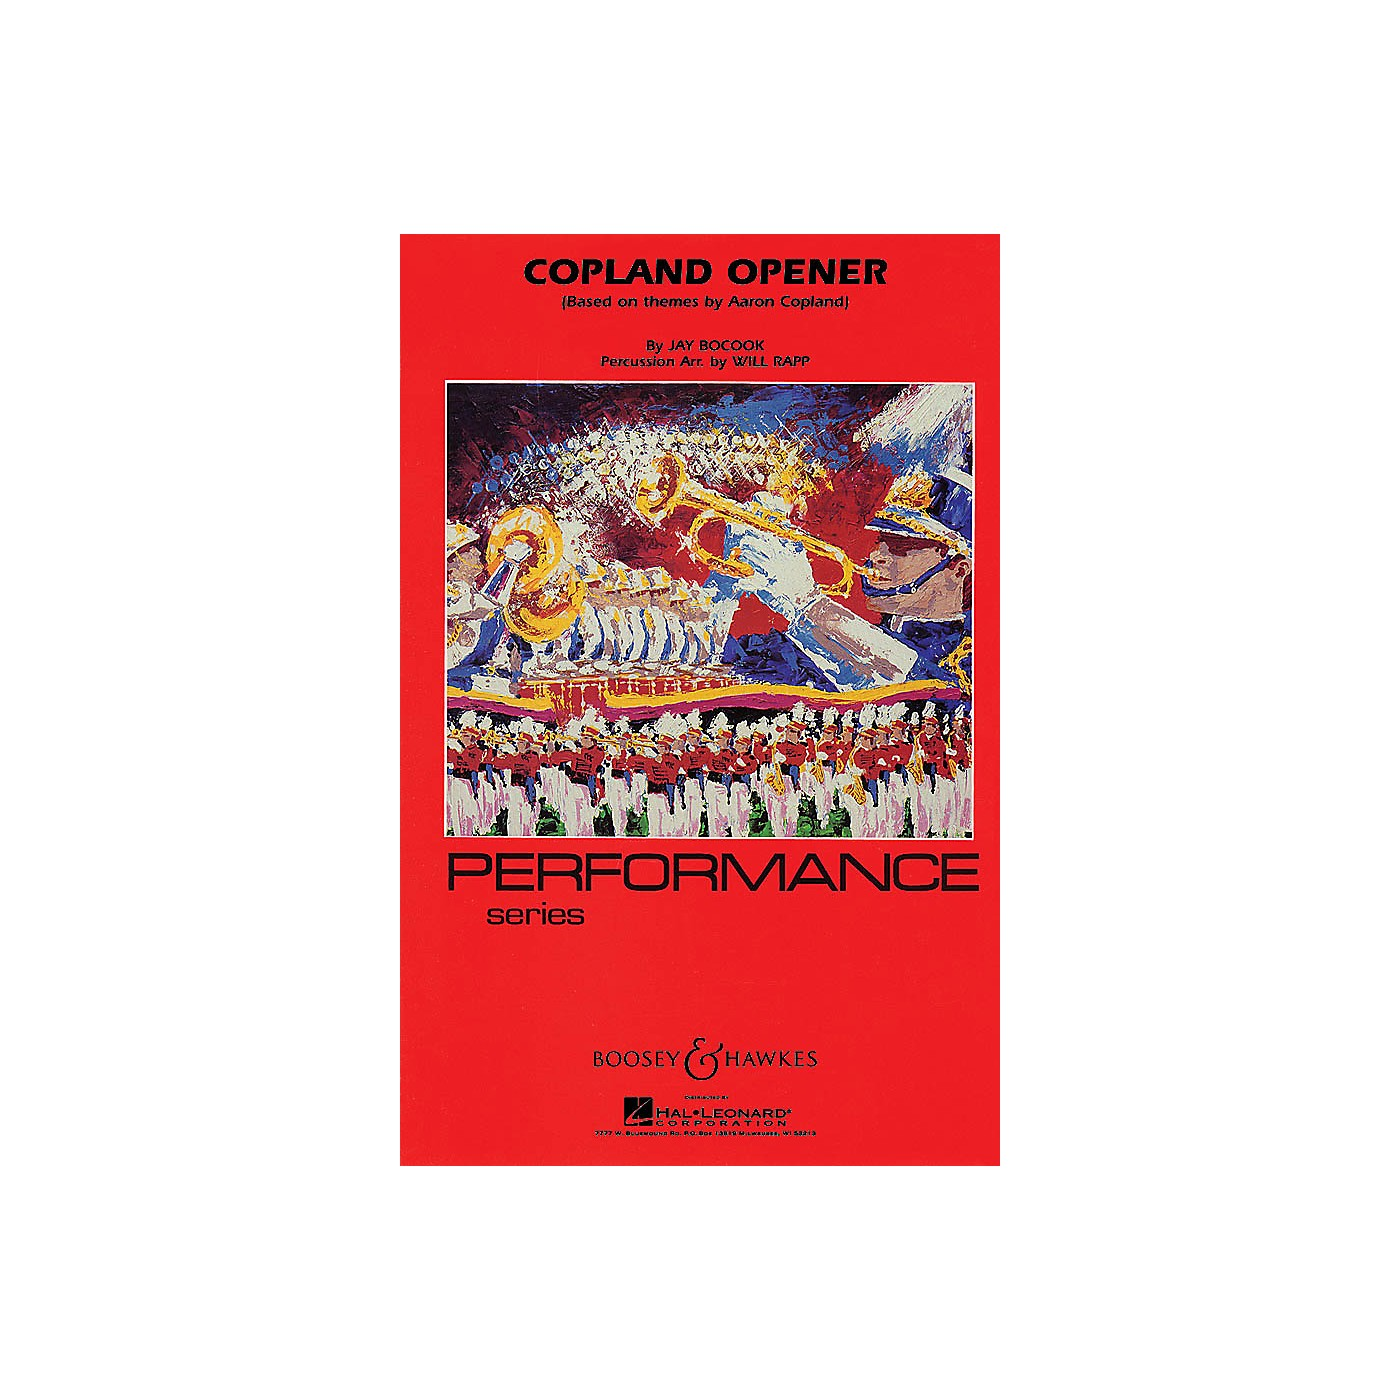 Hal Leonard Copland Opener - Full Score Concert Band Composed by Jay Bocook Arranged by Will Rapp thumbnail